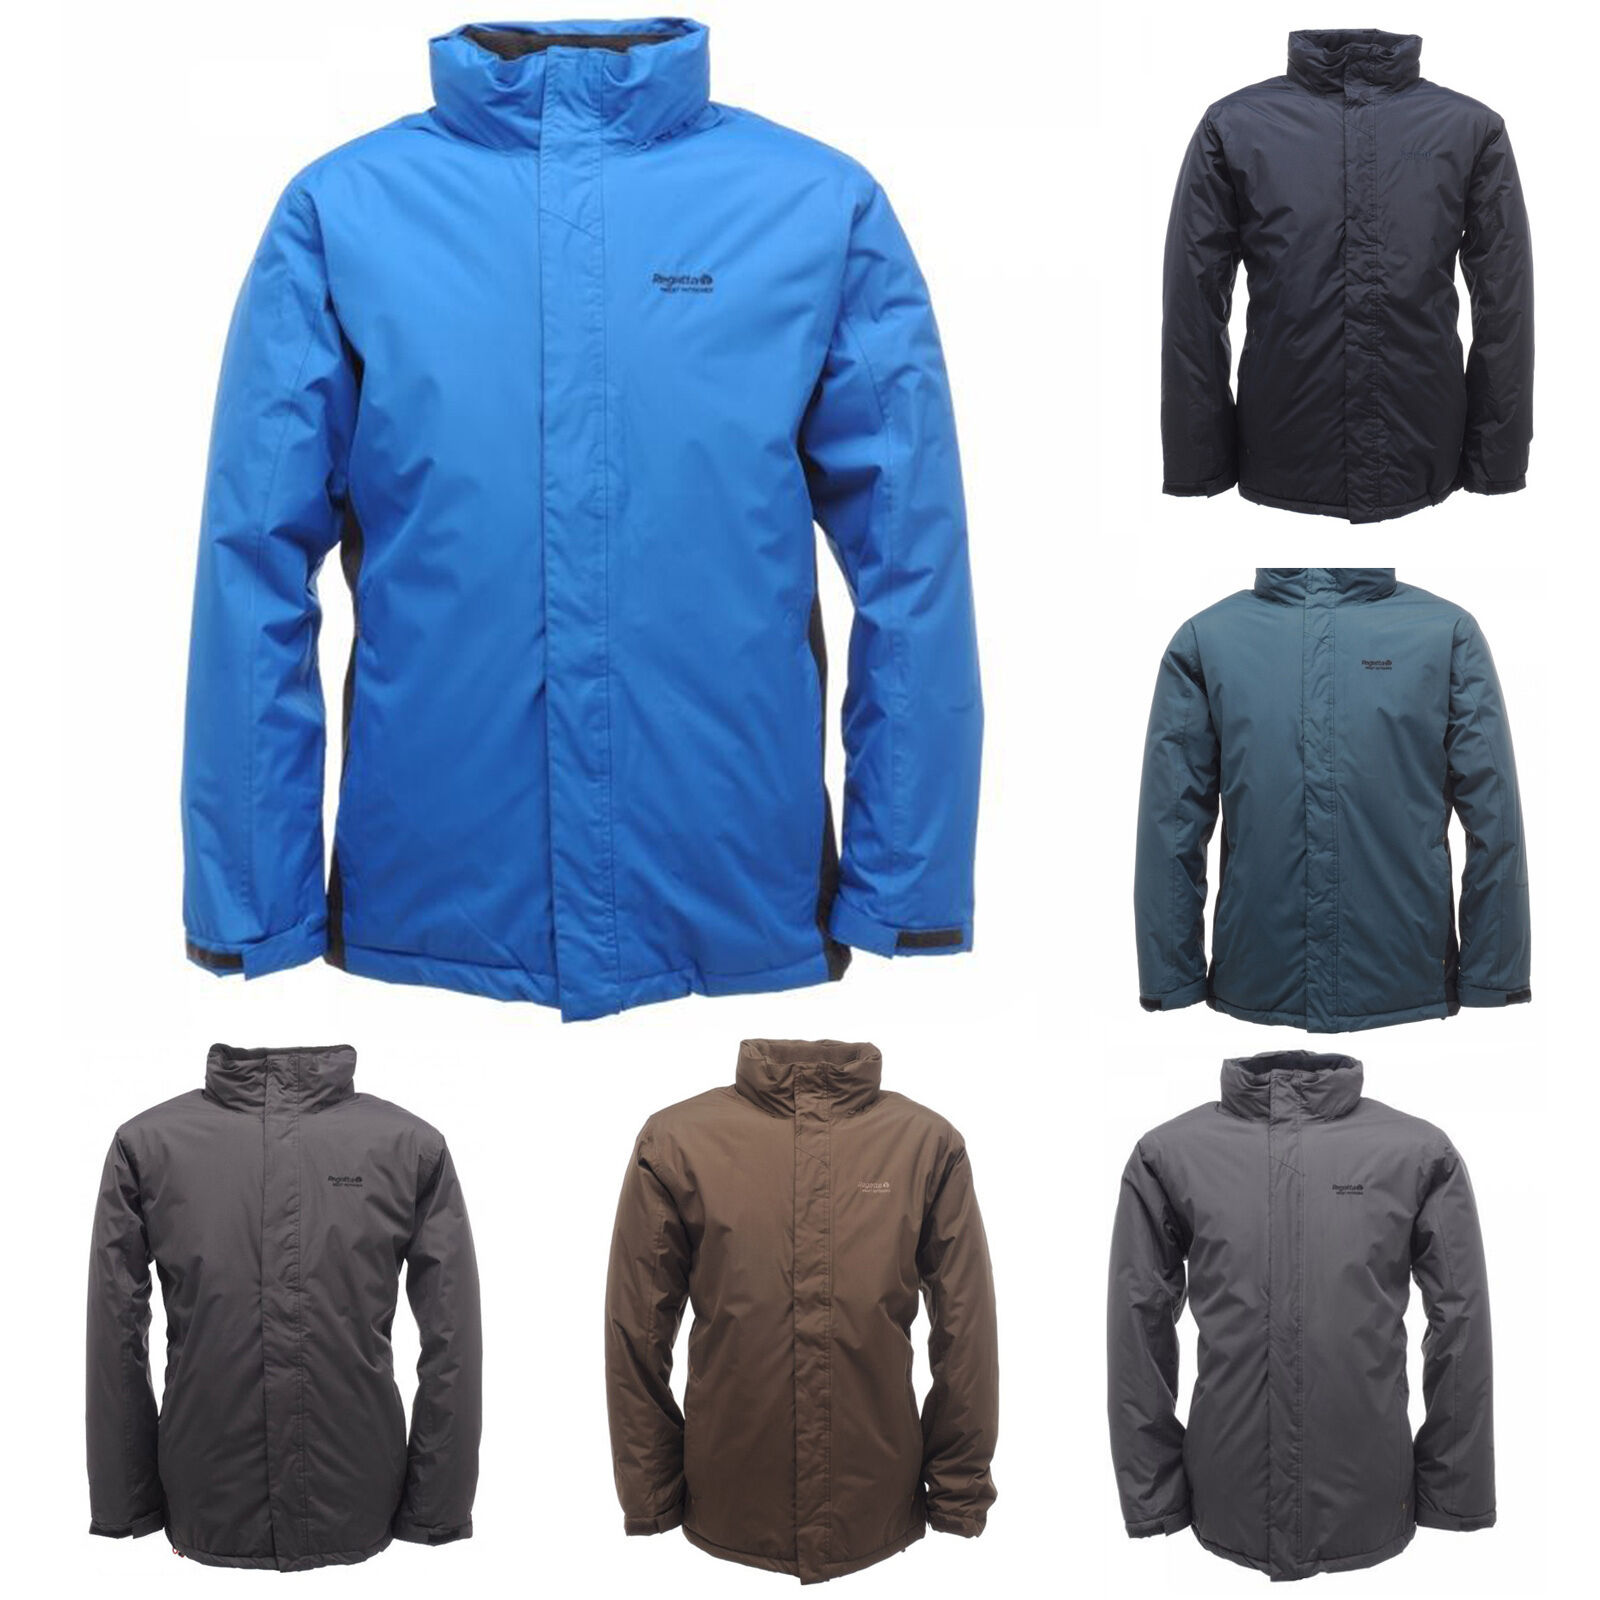 Regatta Mens Jacket Waterproof Padded Hydrafort Fleece Lined ...